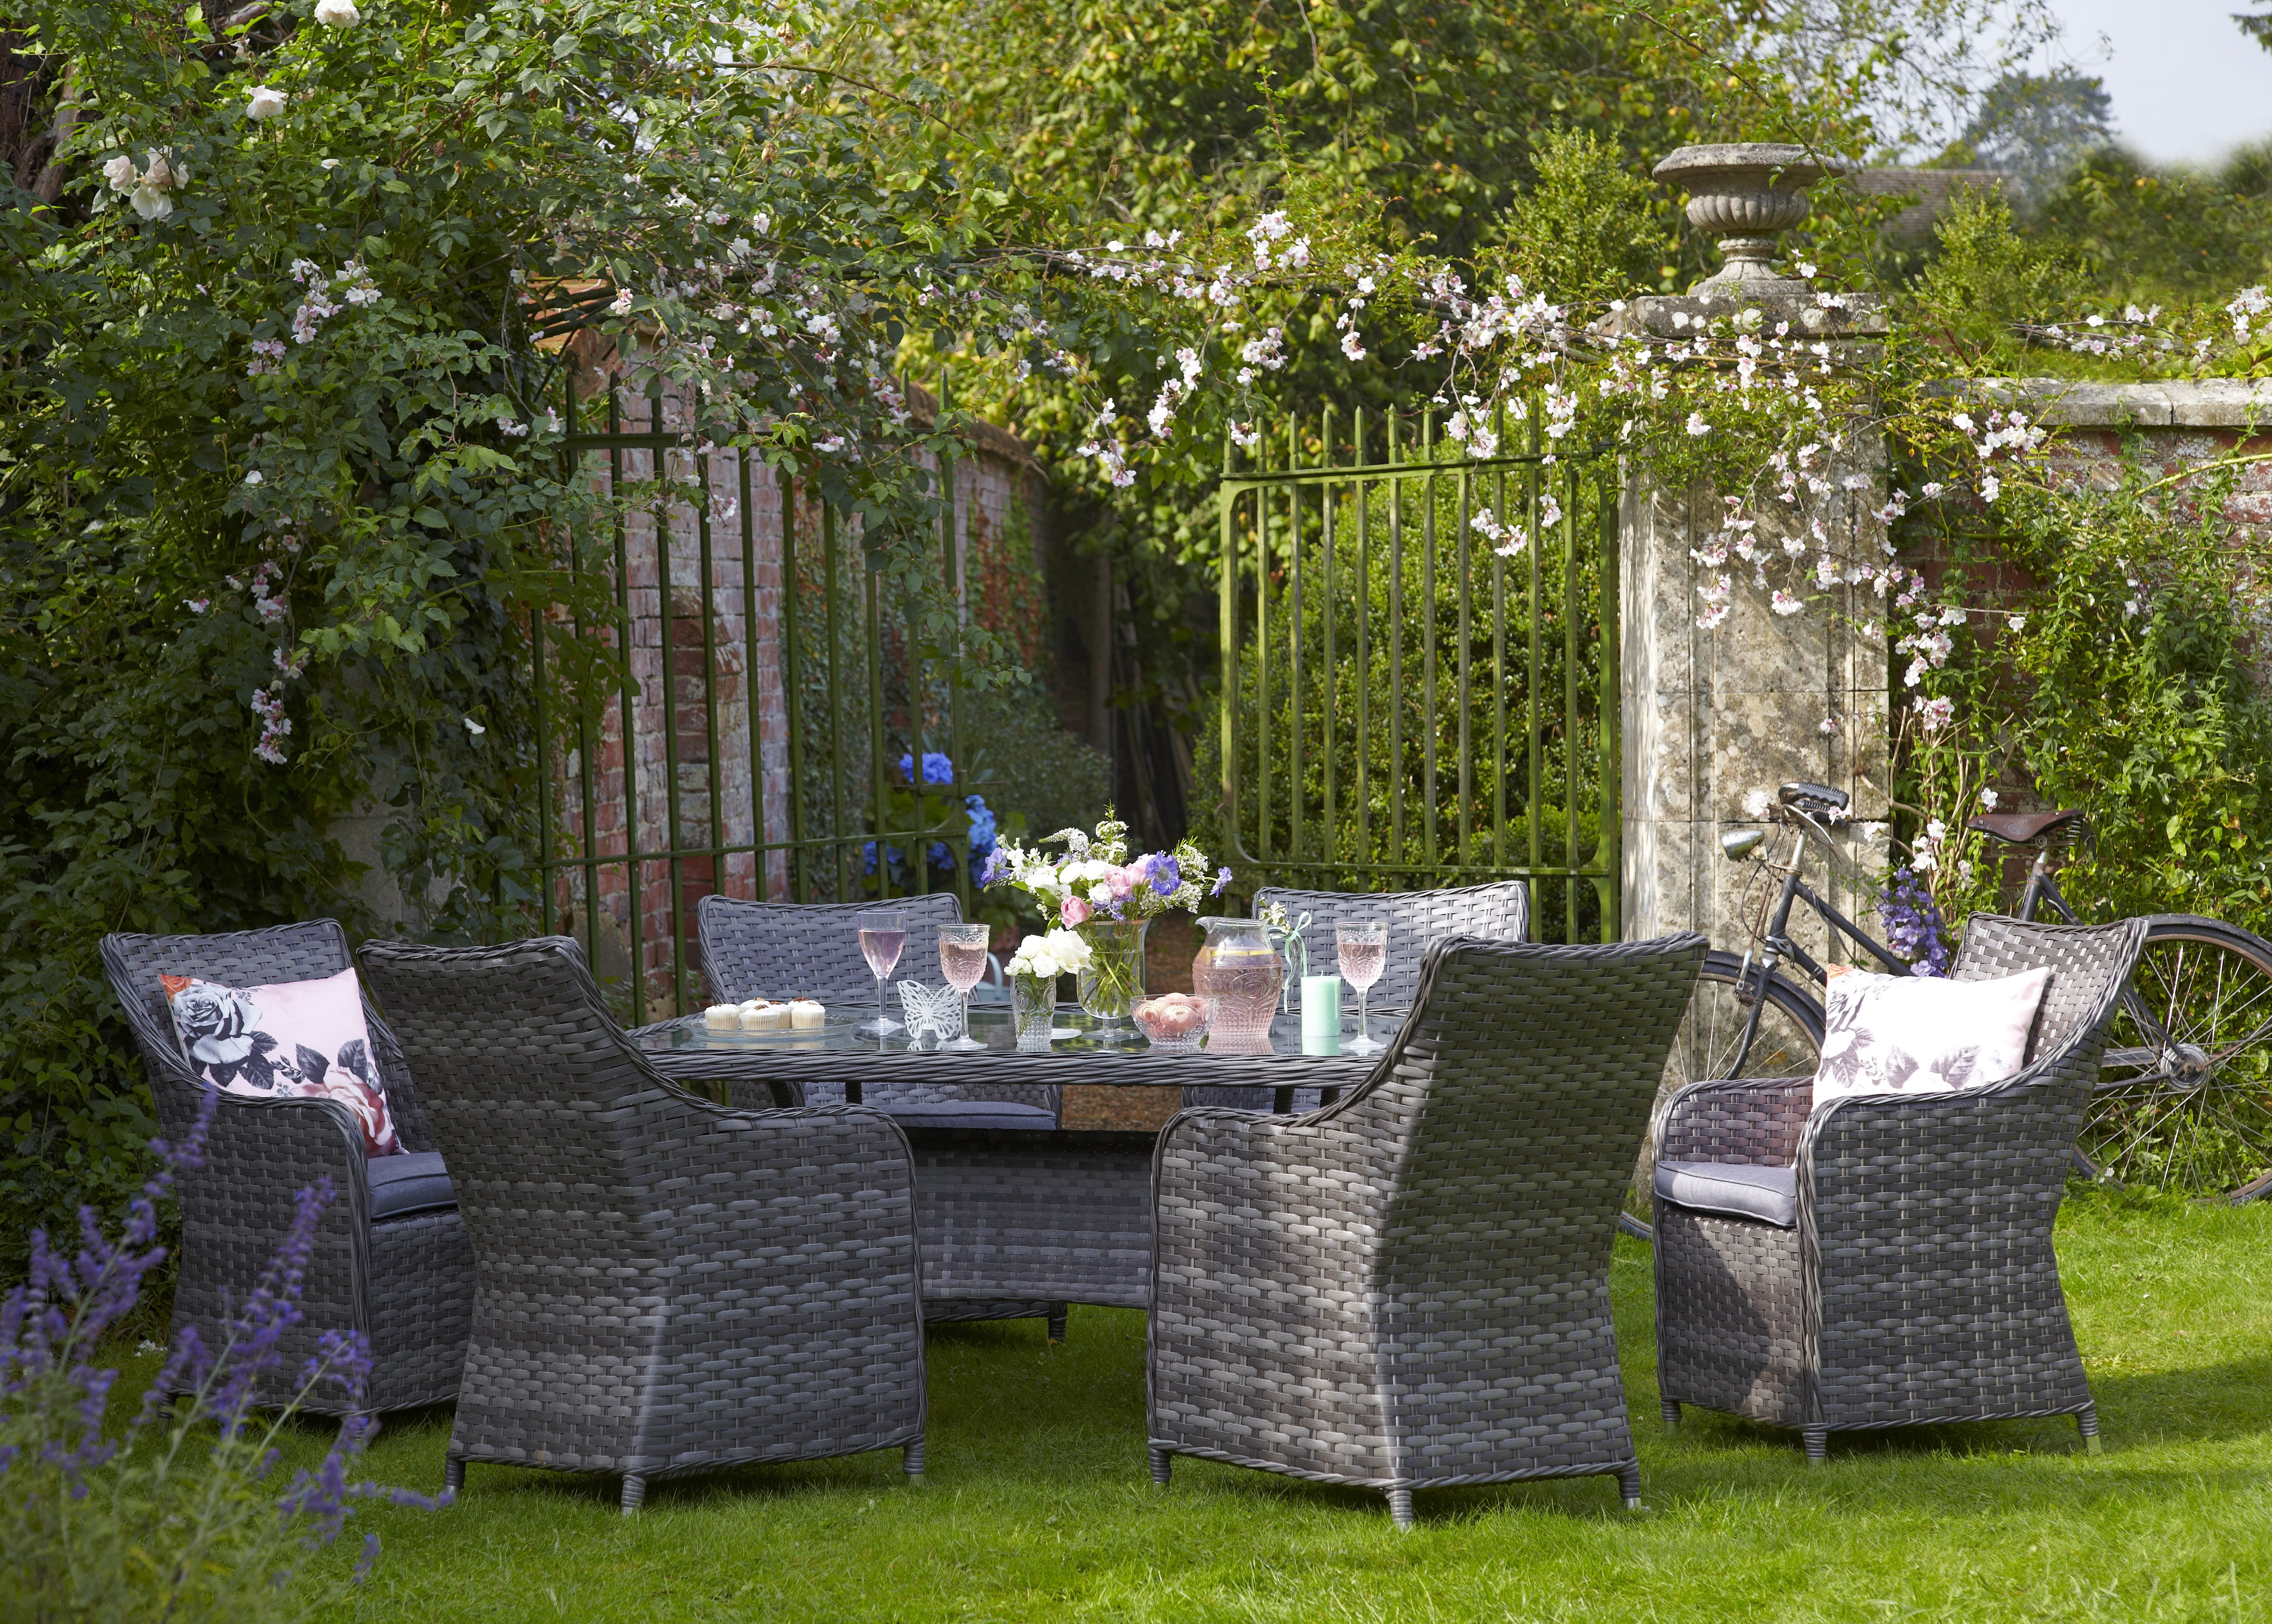 Captivating Beautiful Garden And Rattan Furniture. We Love How The Wall Climbers Have  Grown Around The